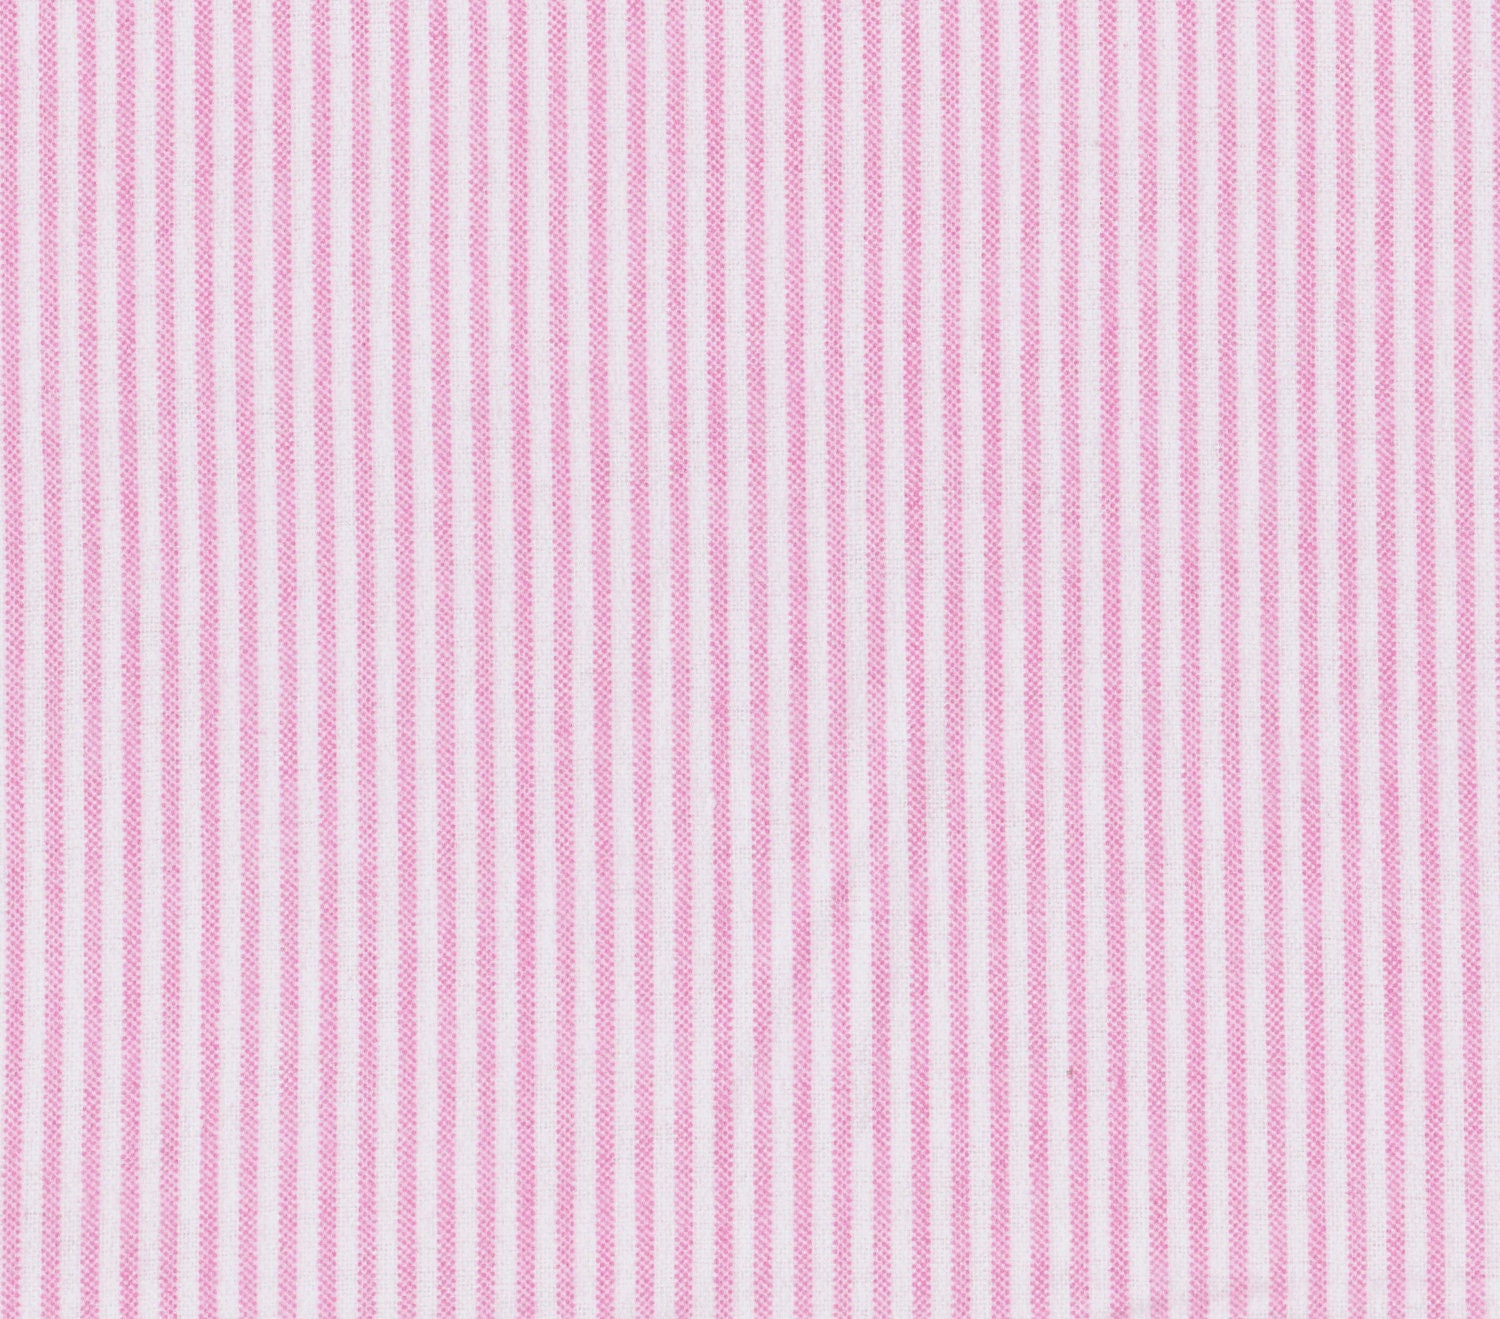 Pink And White Stripe Flannel Fabric 100% Cotton